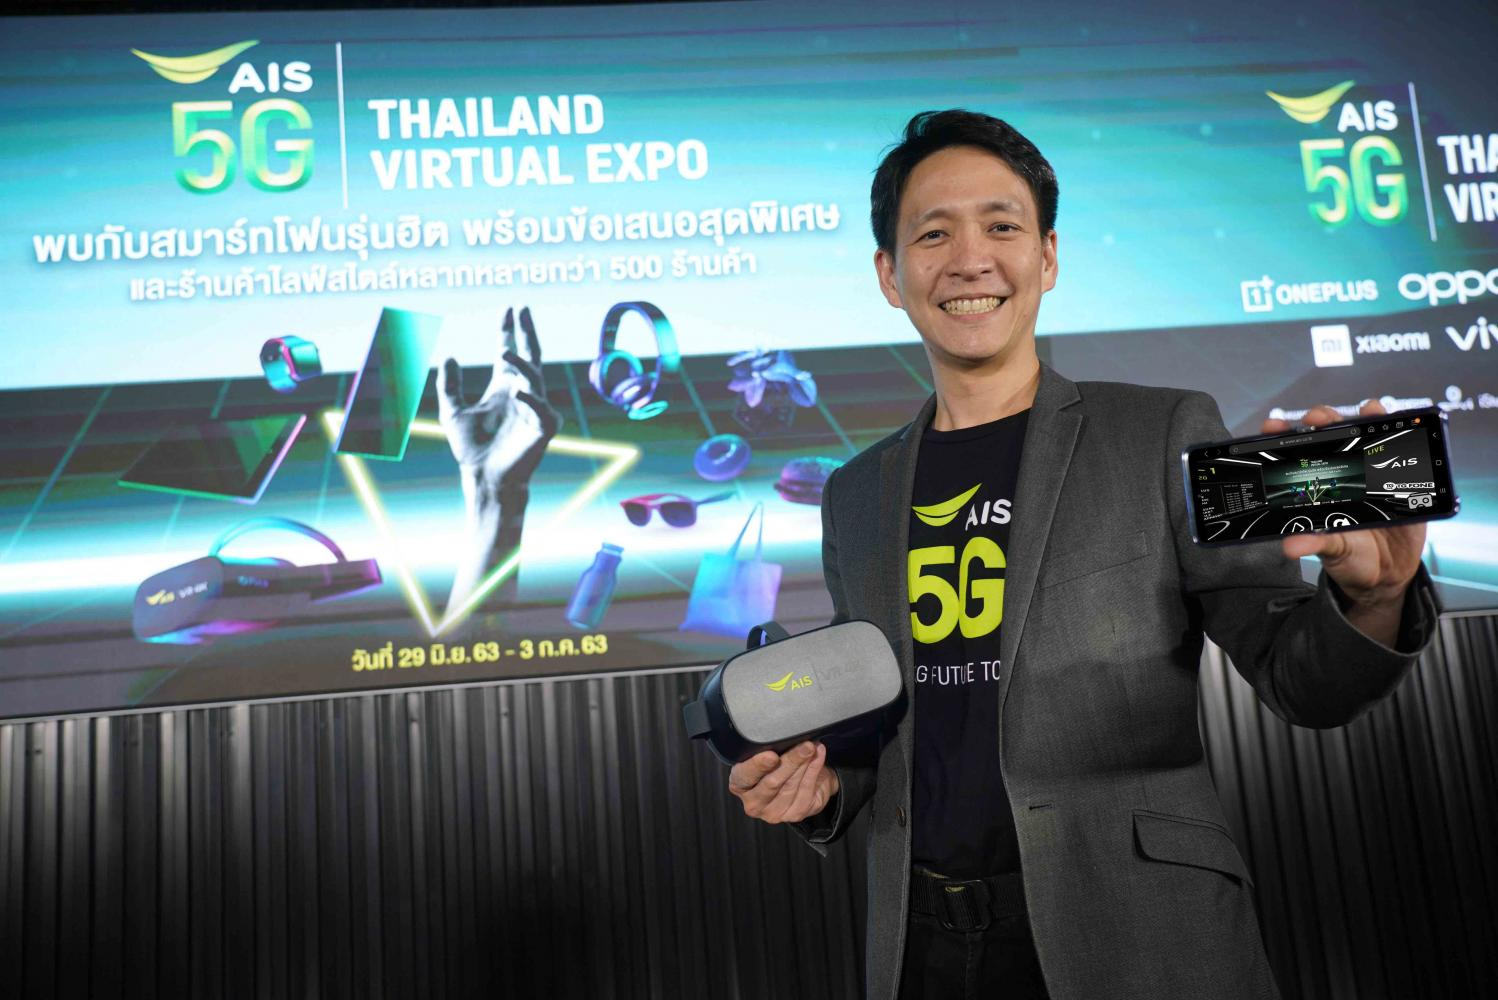 Mr Pratthana at the launch event for AIS's Thailand Virtual Expo.